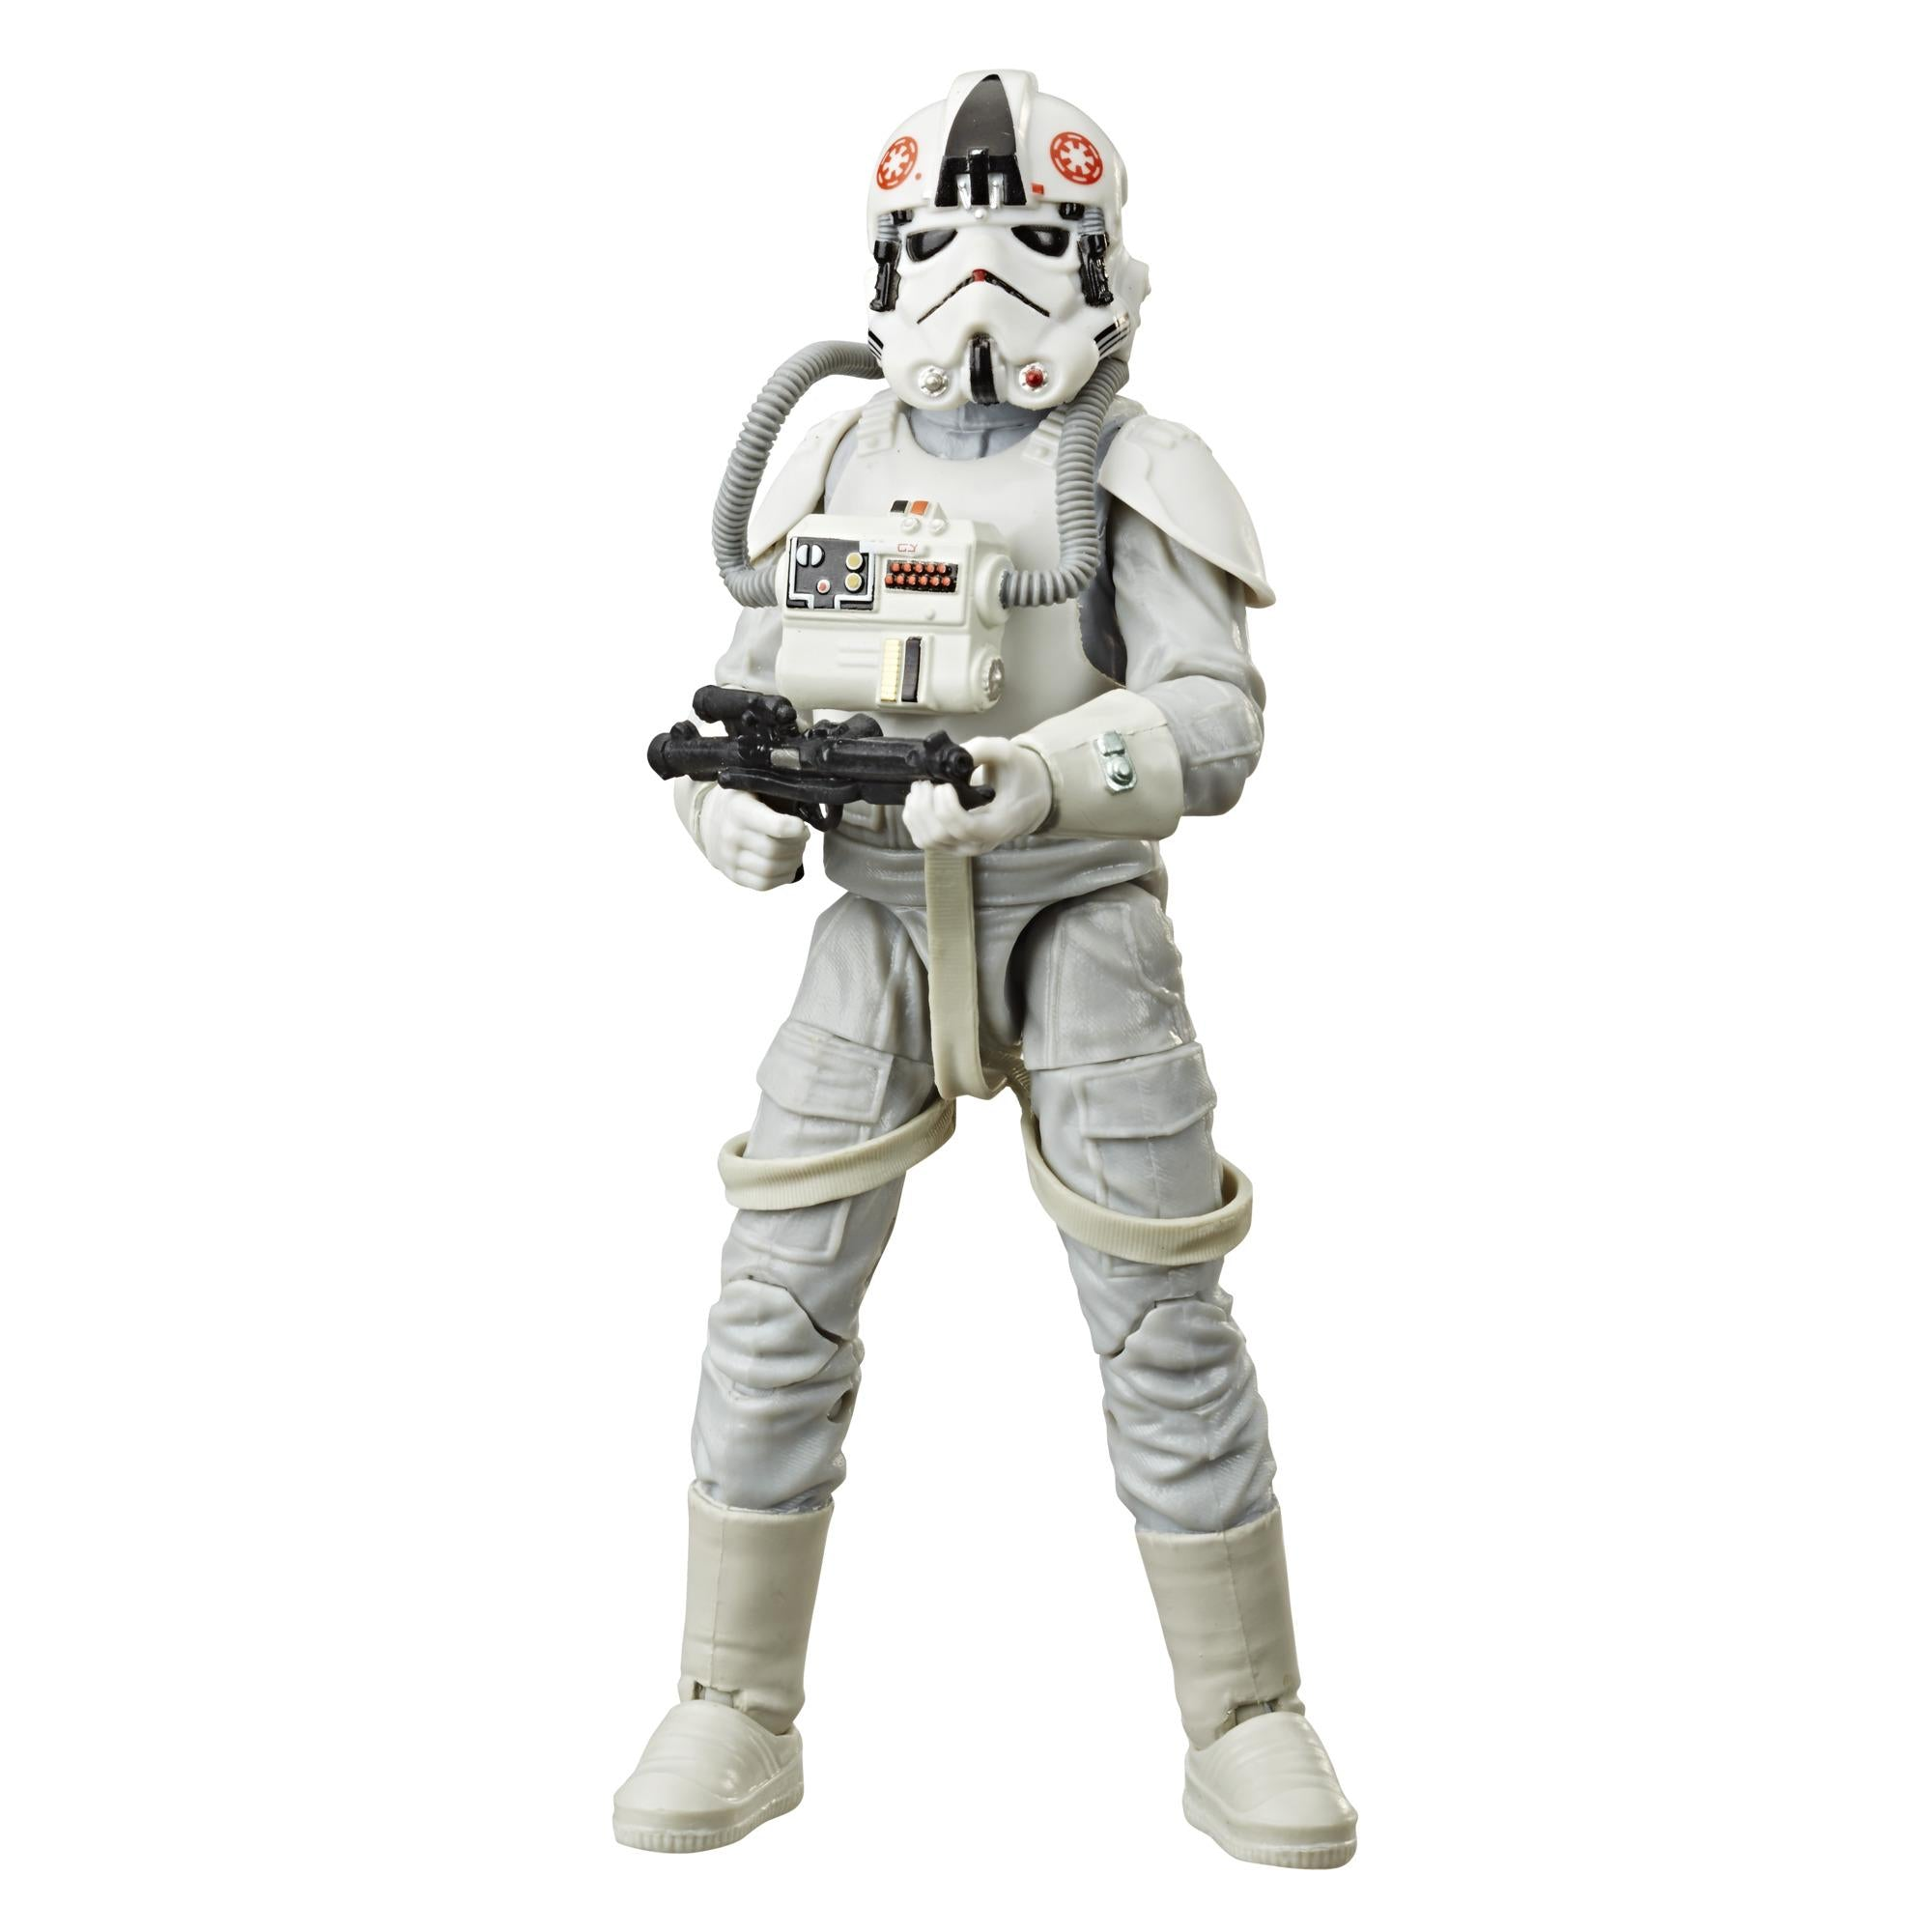 Star Wars - The Empire Strikes Back 40TH Anniversary - AT-AT Driver (E8079) Action Figure